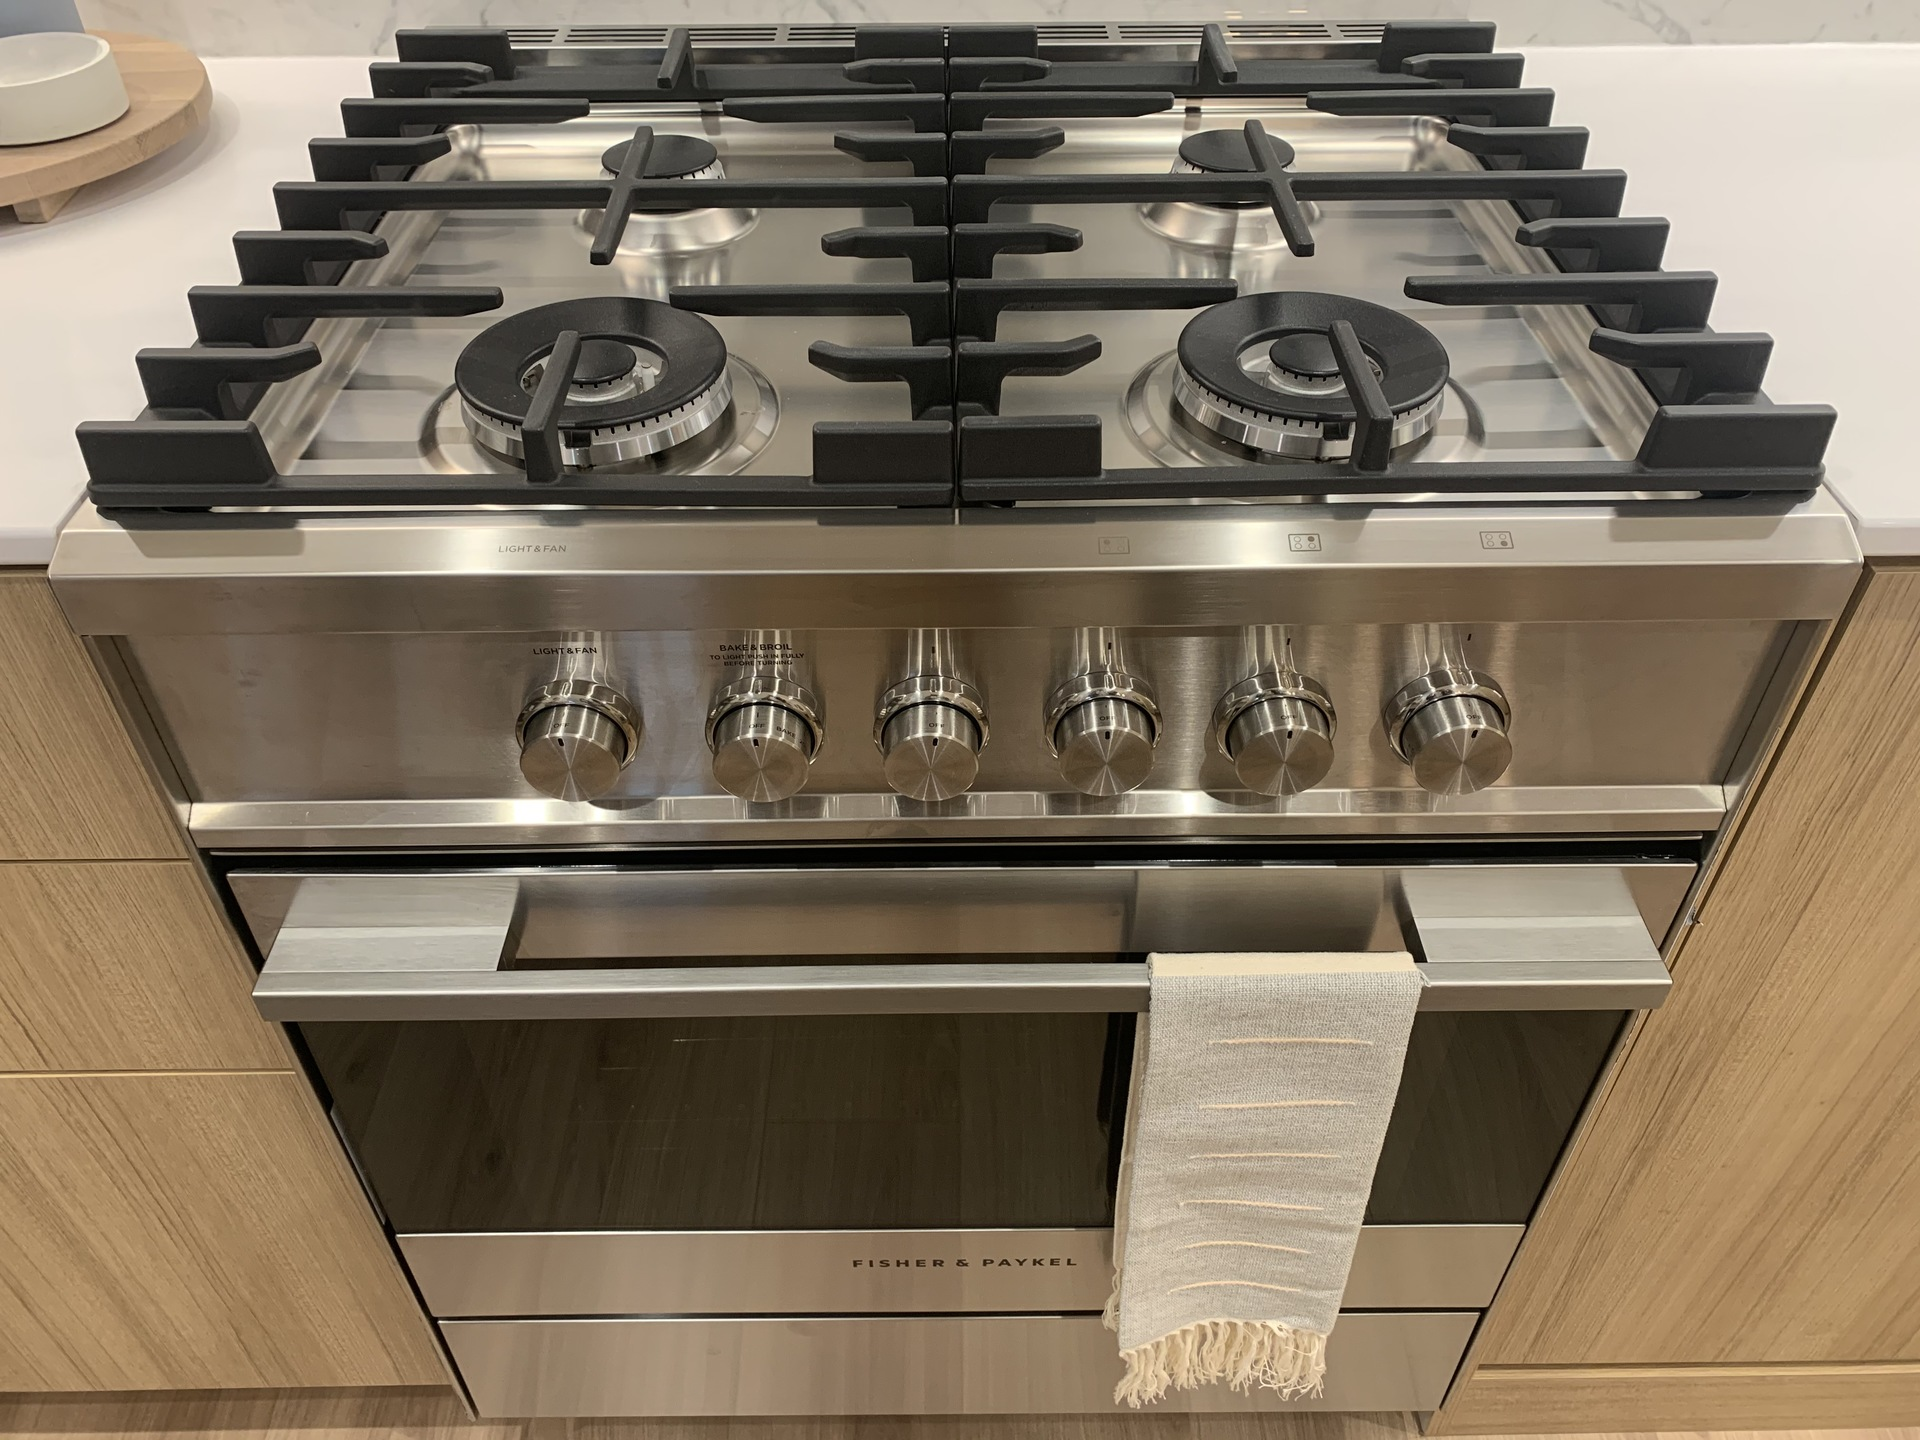 Kin - Fisher & Paykel gas stove at The Kin Collection (7470 Buller Avenue, Metrotown, Burnaby South)